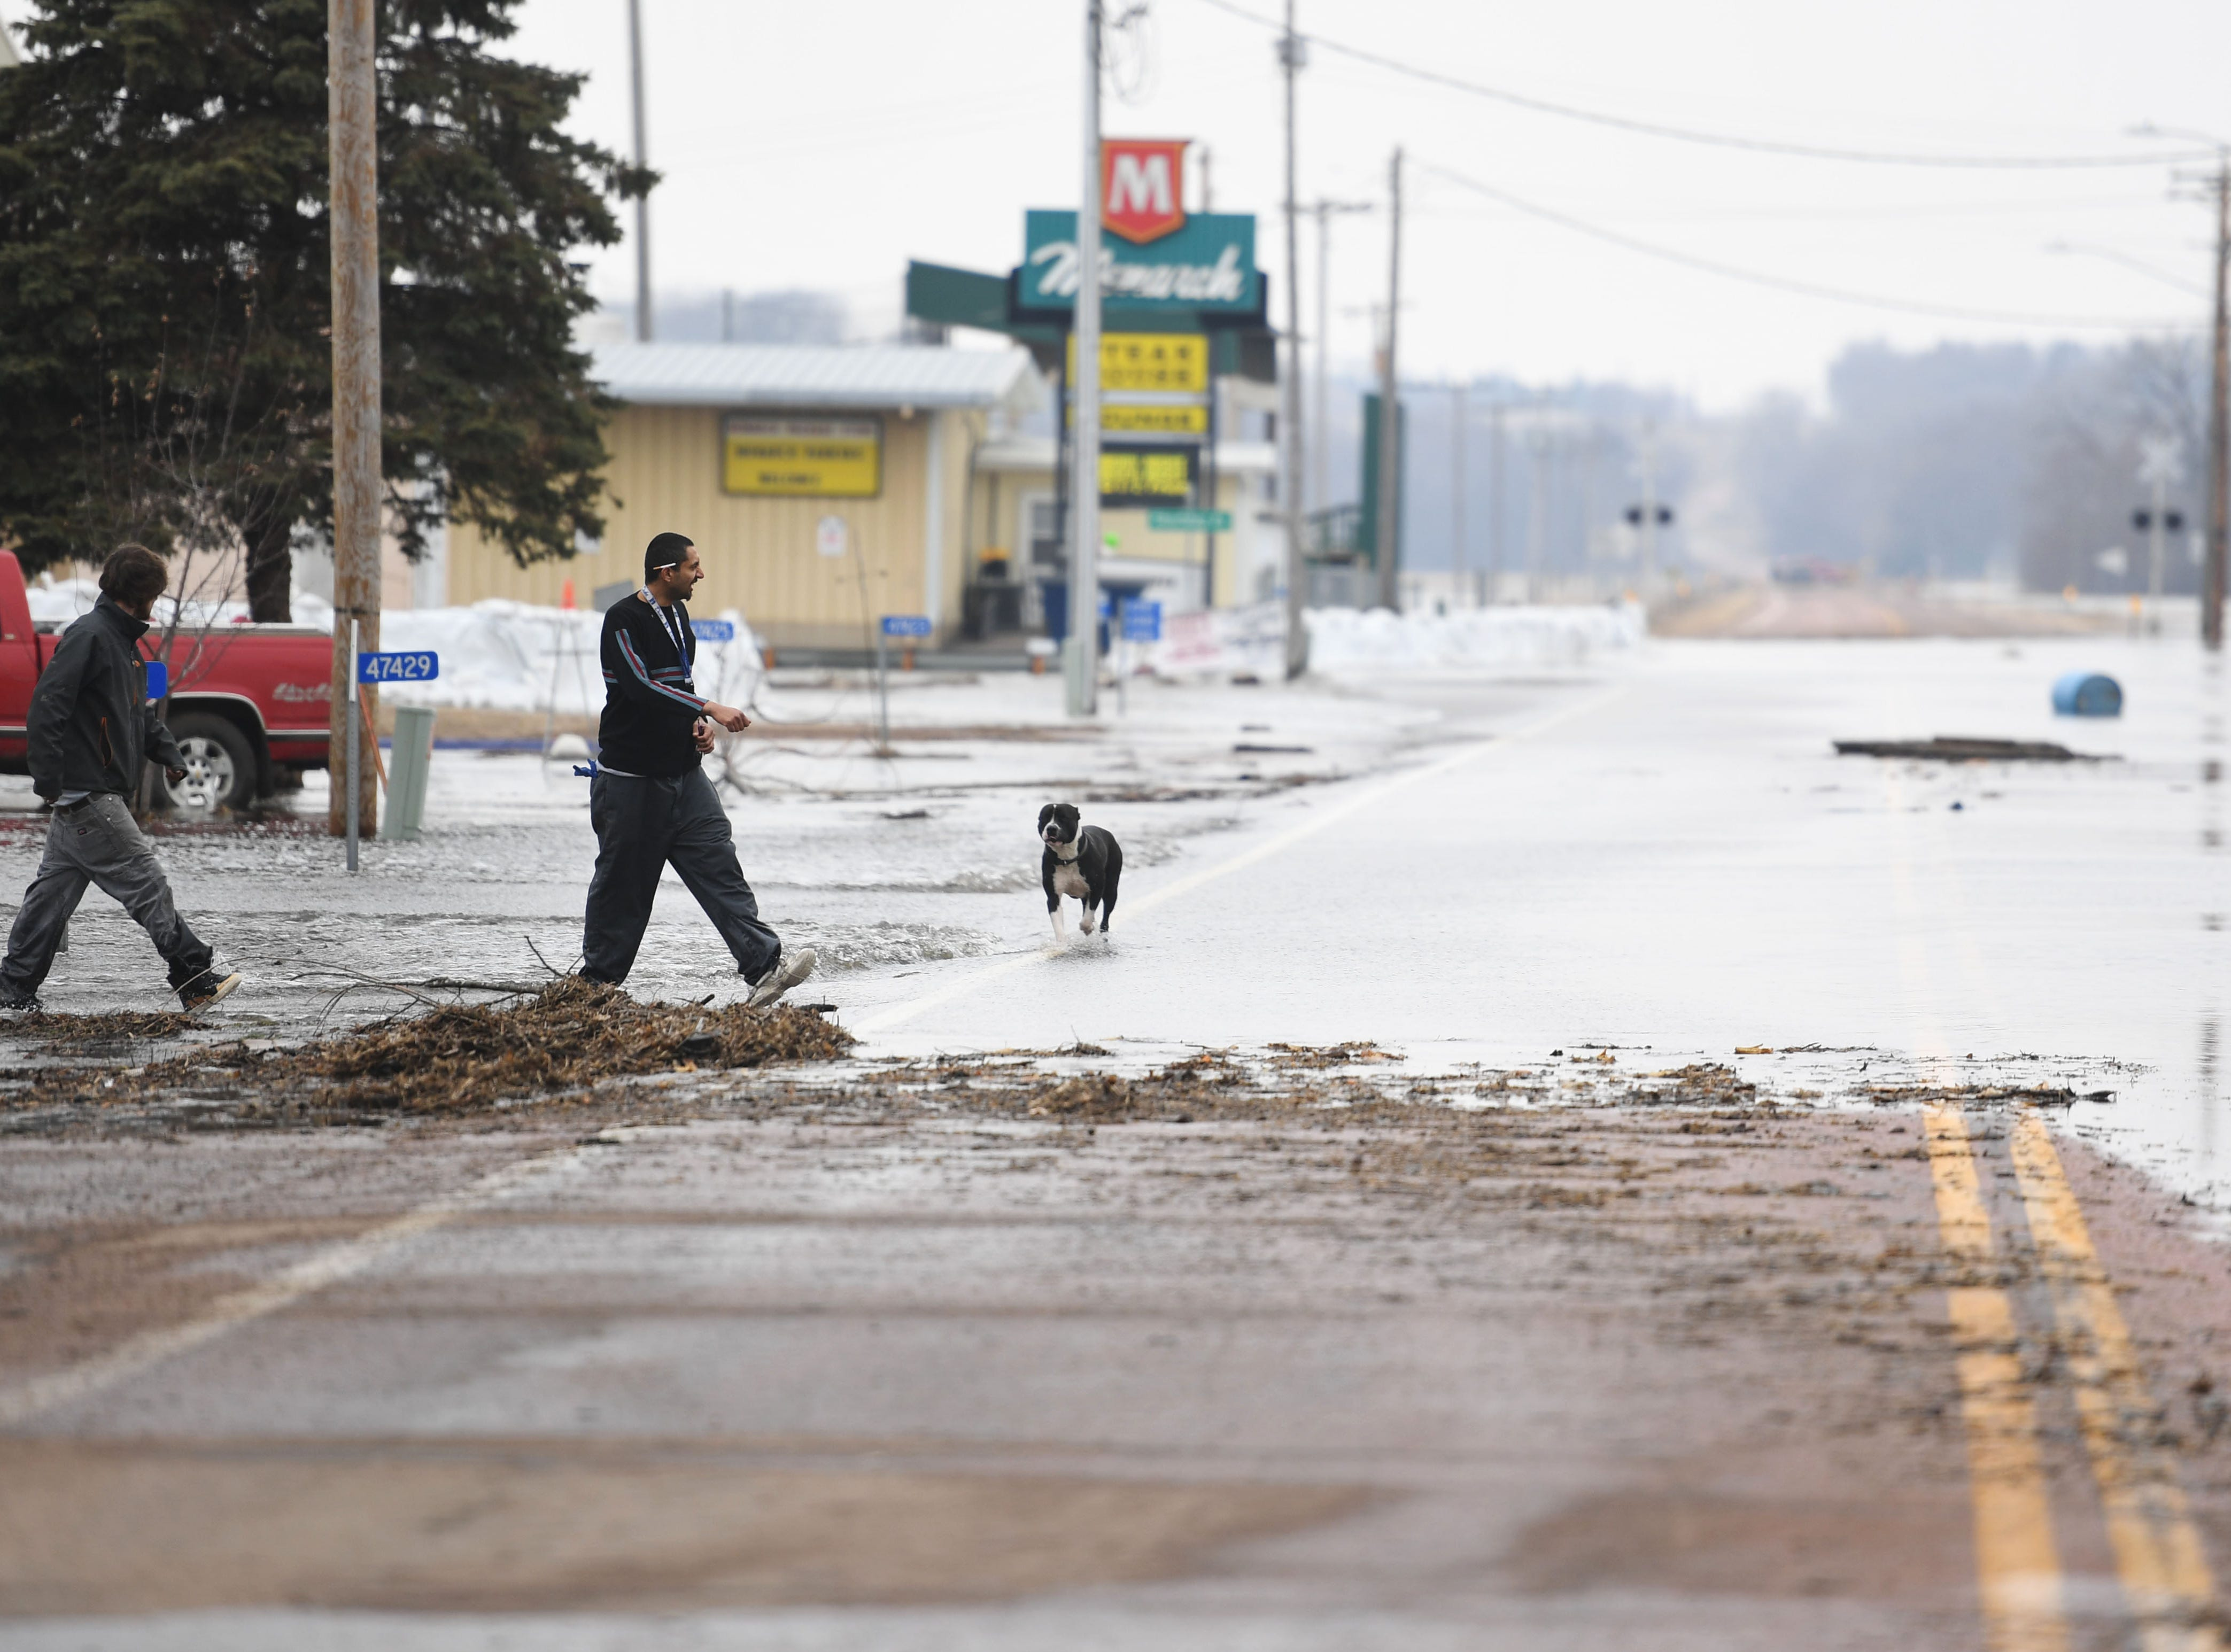 People leave their home on 258th street as flooding continues in Renner Tuesday, March 26, in Renner, S.D. The latest river forecasts have the Big Sioux at Dell Rapids staying at 'major' flood level until early next week.